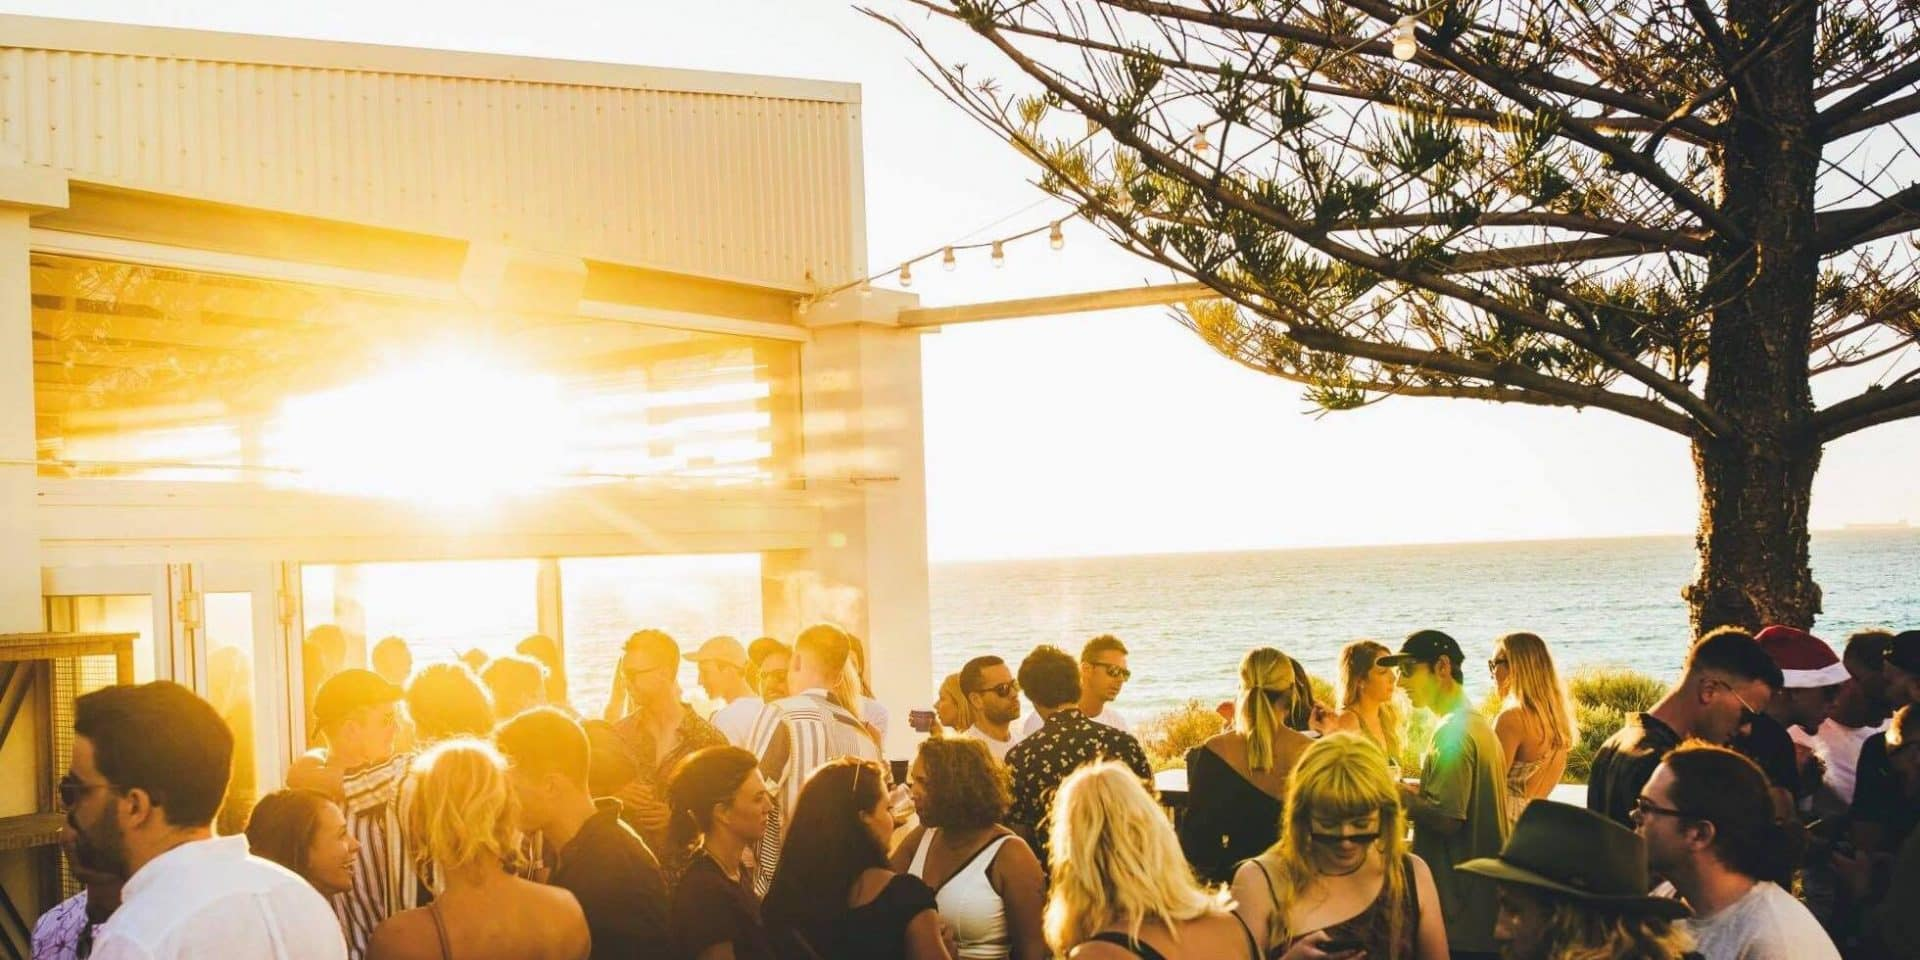 Coolest Beach Bars in Perth